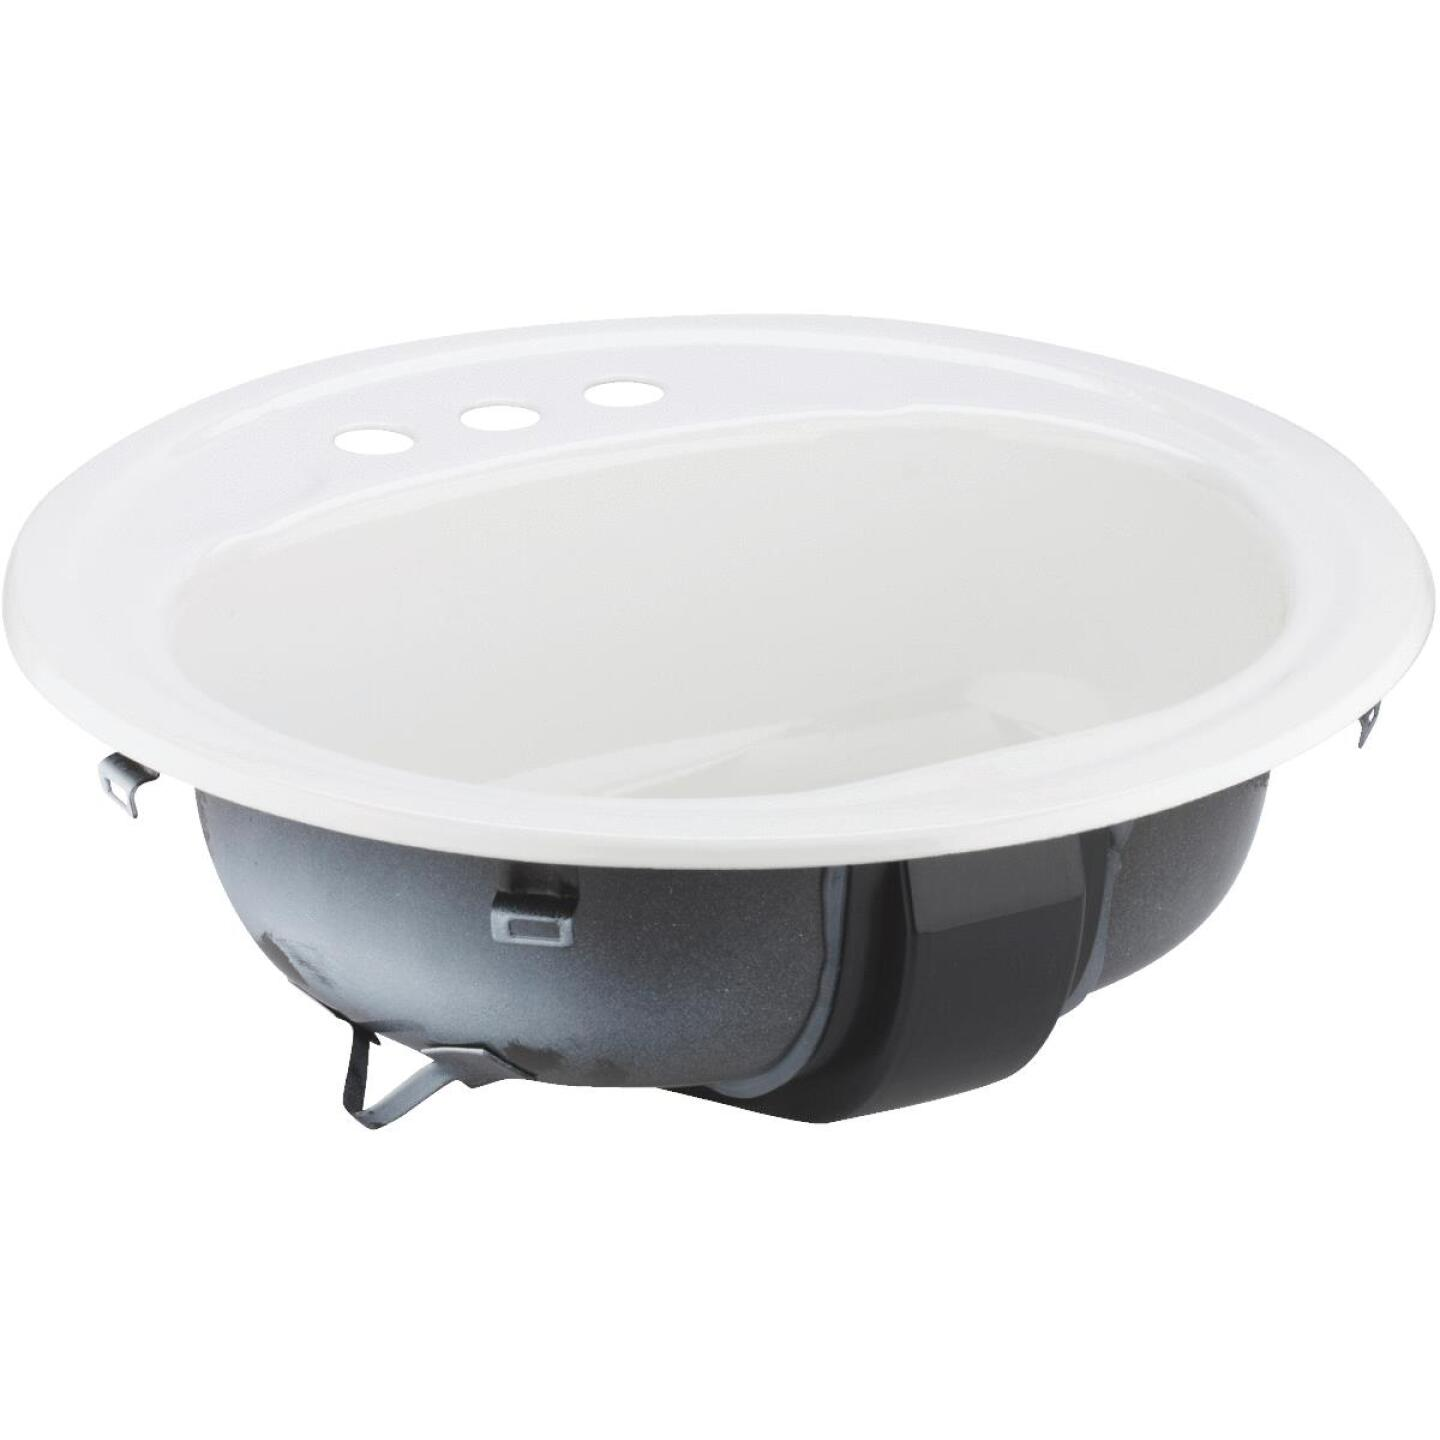 Briggs Anderson Round Drop-In Oval Bathroom Sink, White Image 1